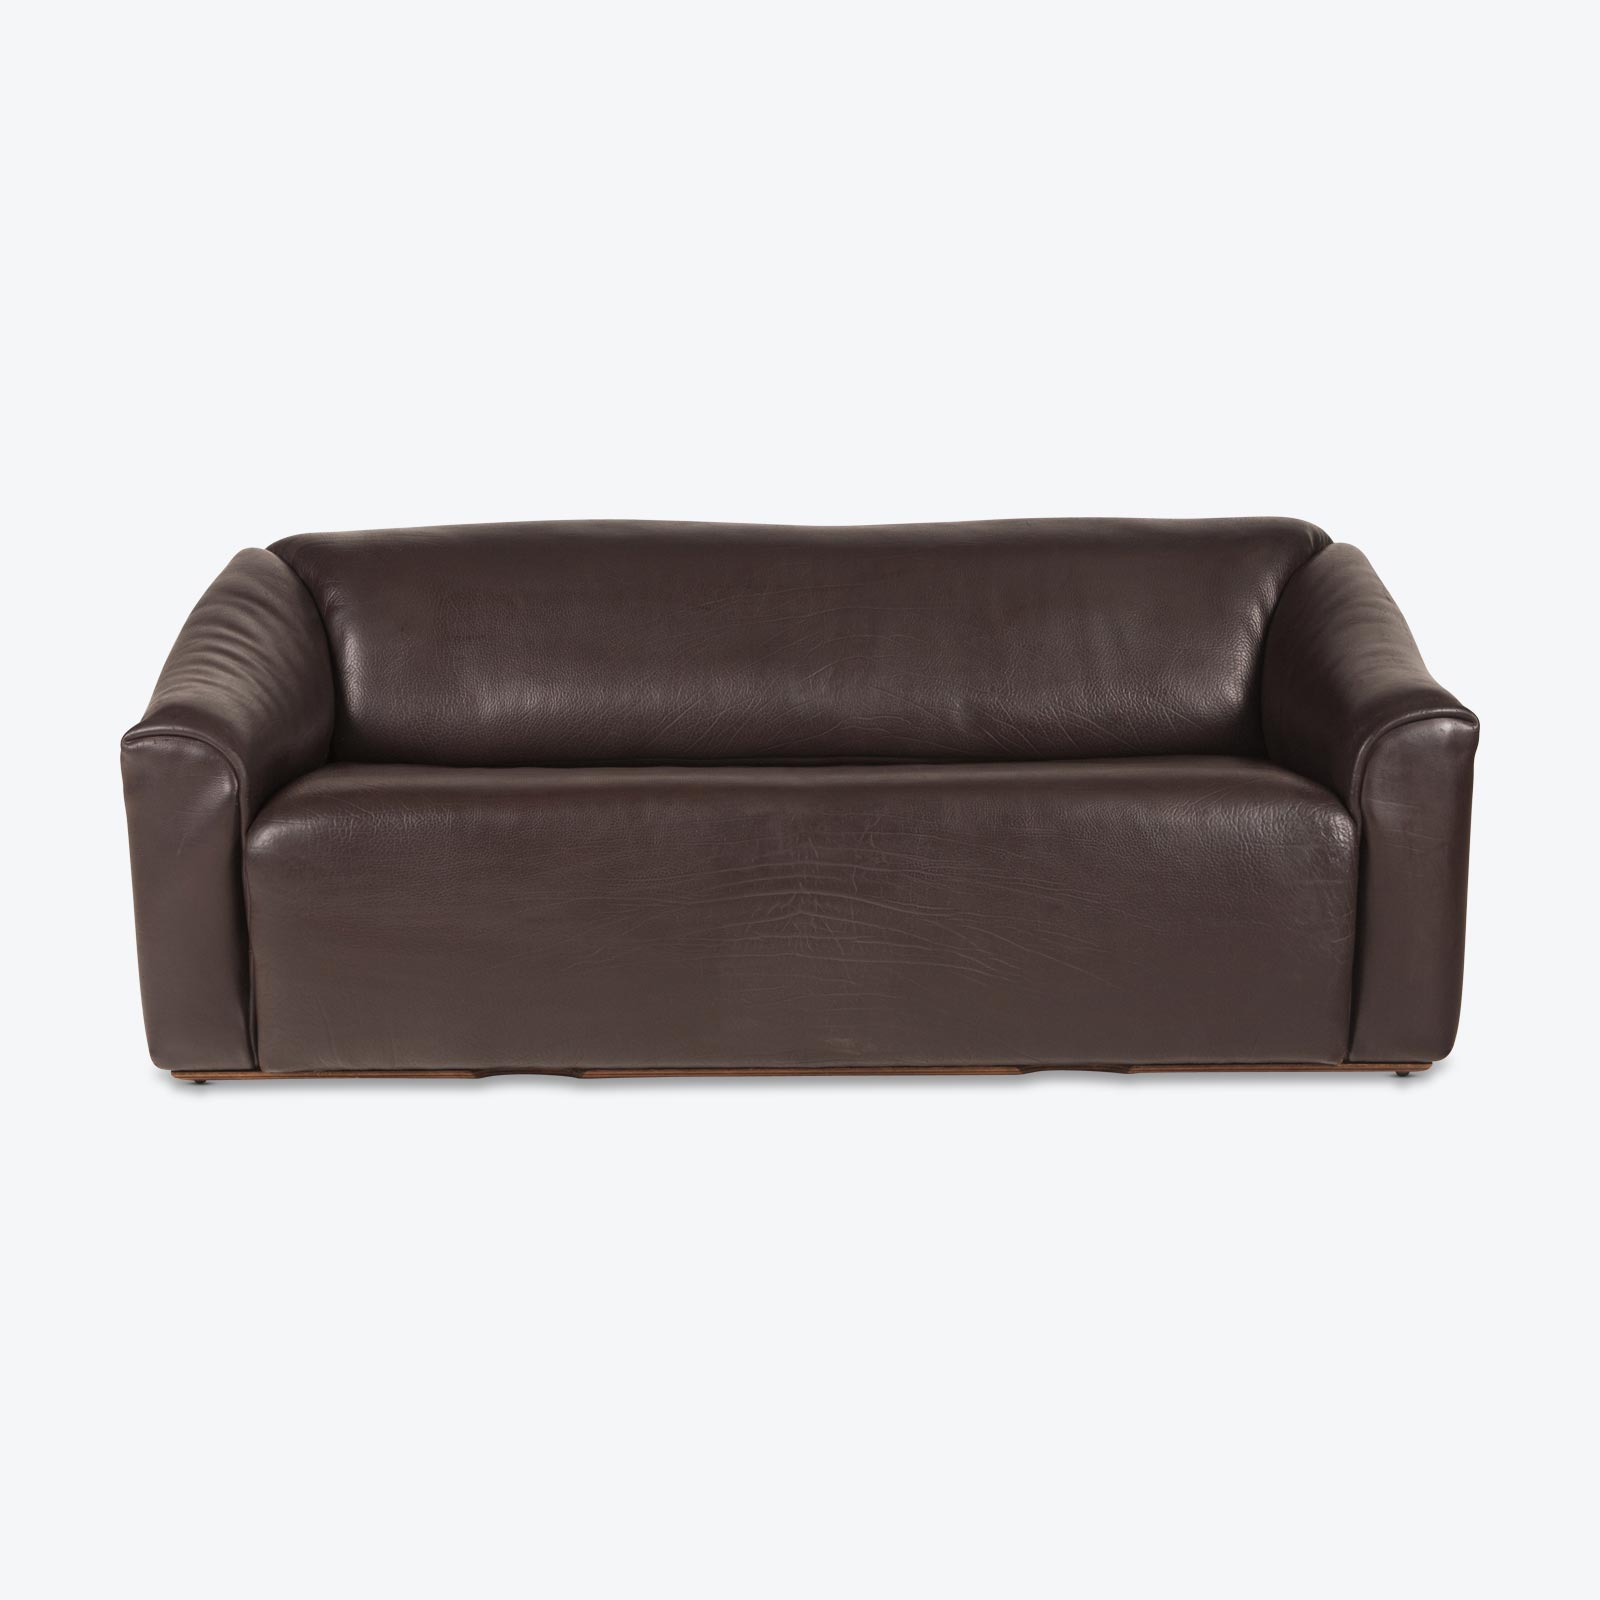 Ds47 3 Seat Sofa By De Sede In Thick Dark Brown Leather 1970s Switzerland 01